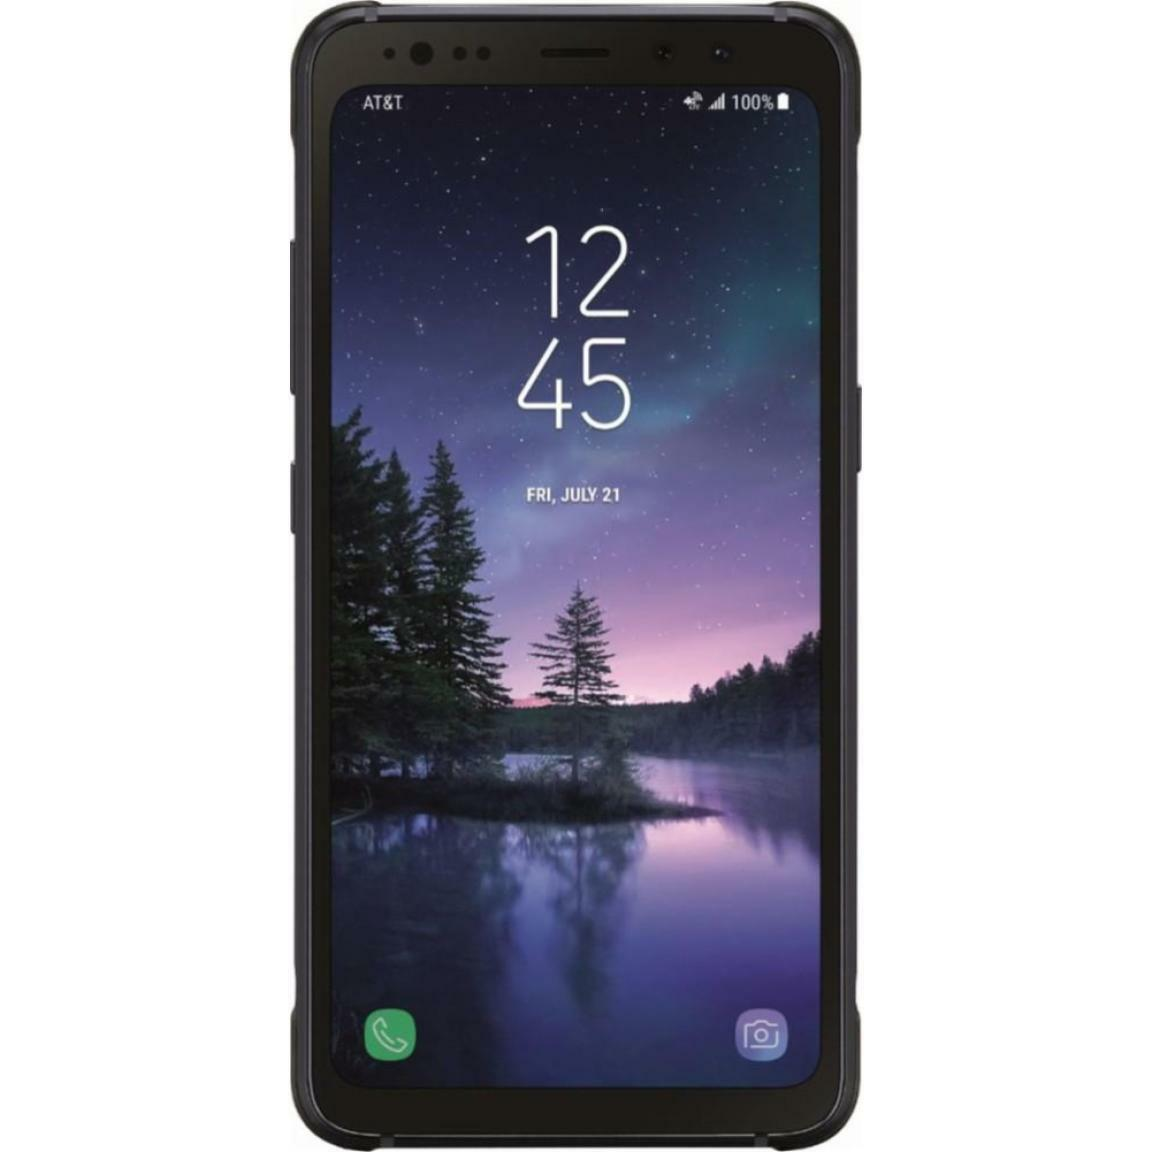 Android Phone - Samsung Galaxy S8 Active - G892A - Gray (Factory GSM Unlocked; AT&T / T-Mobile)